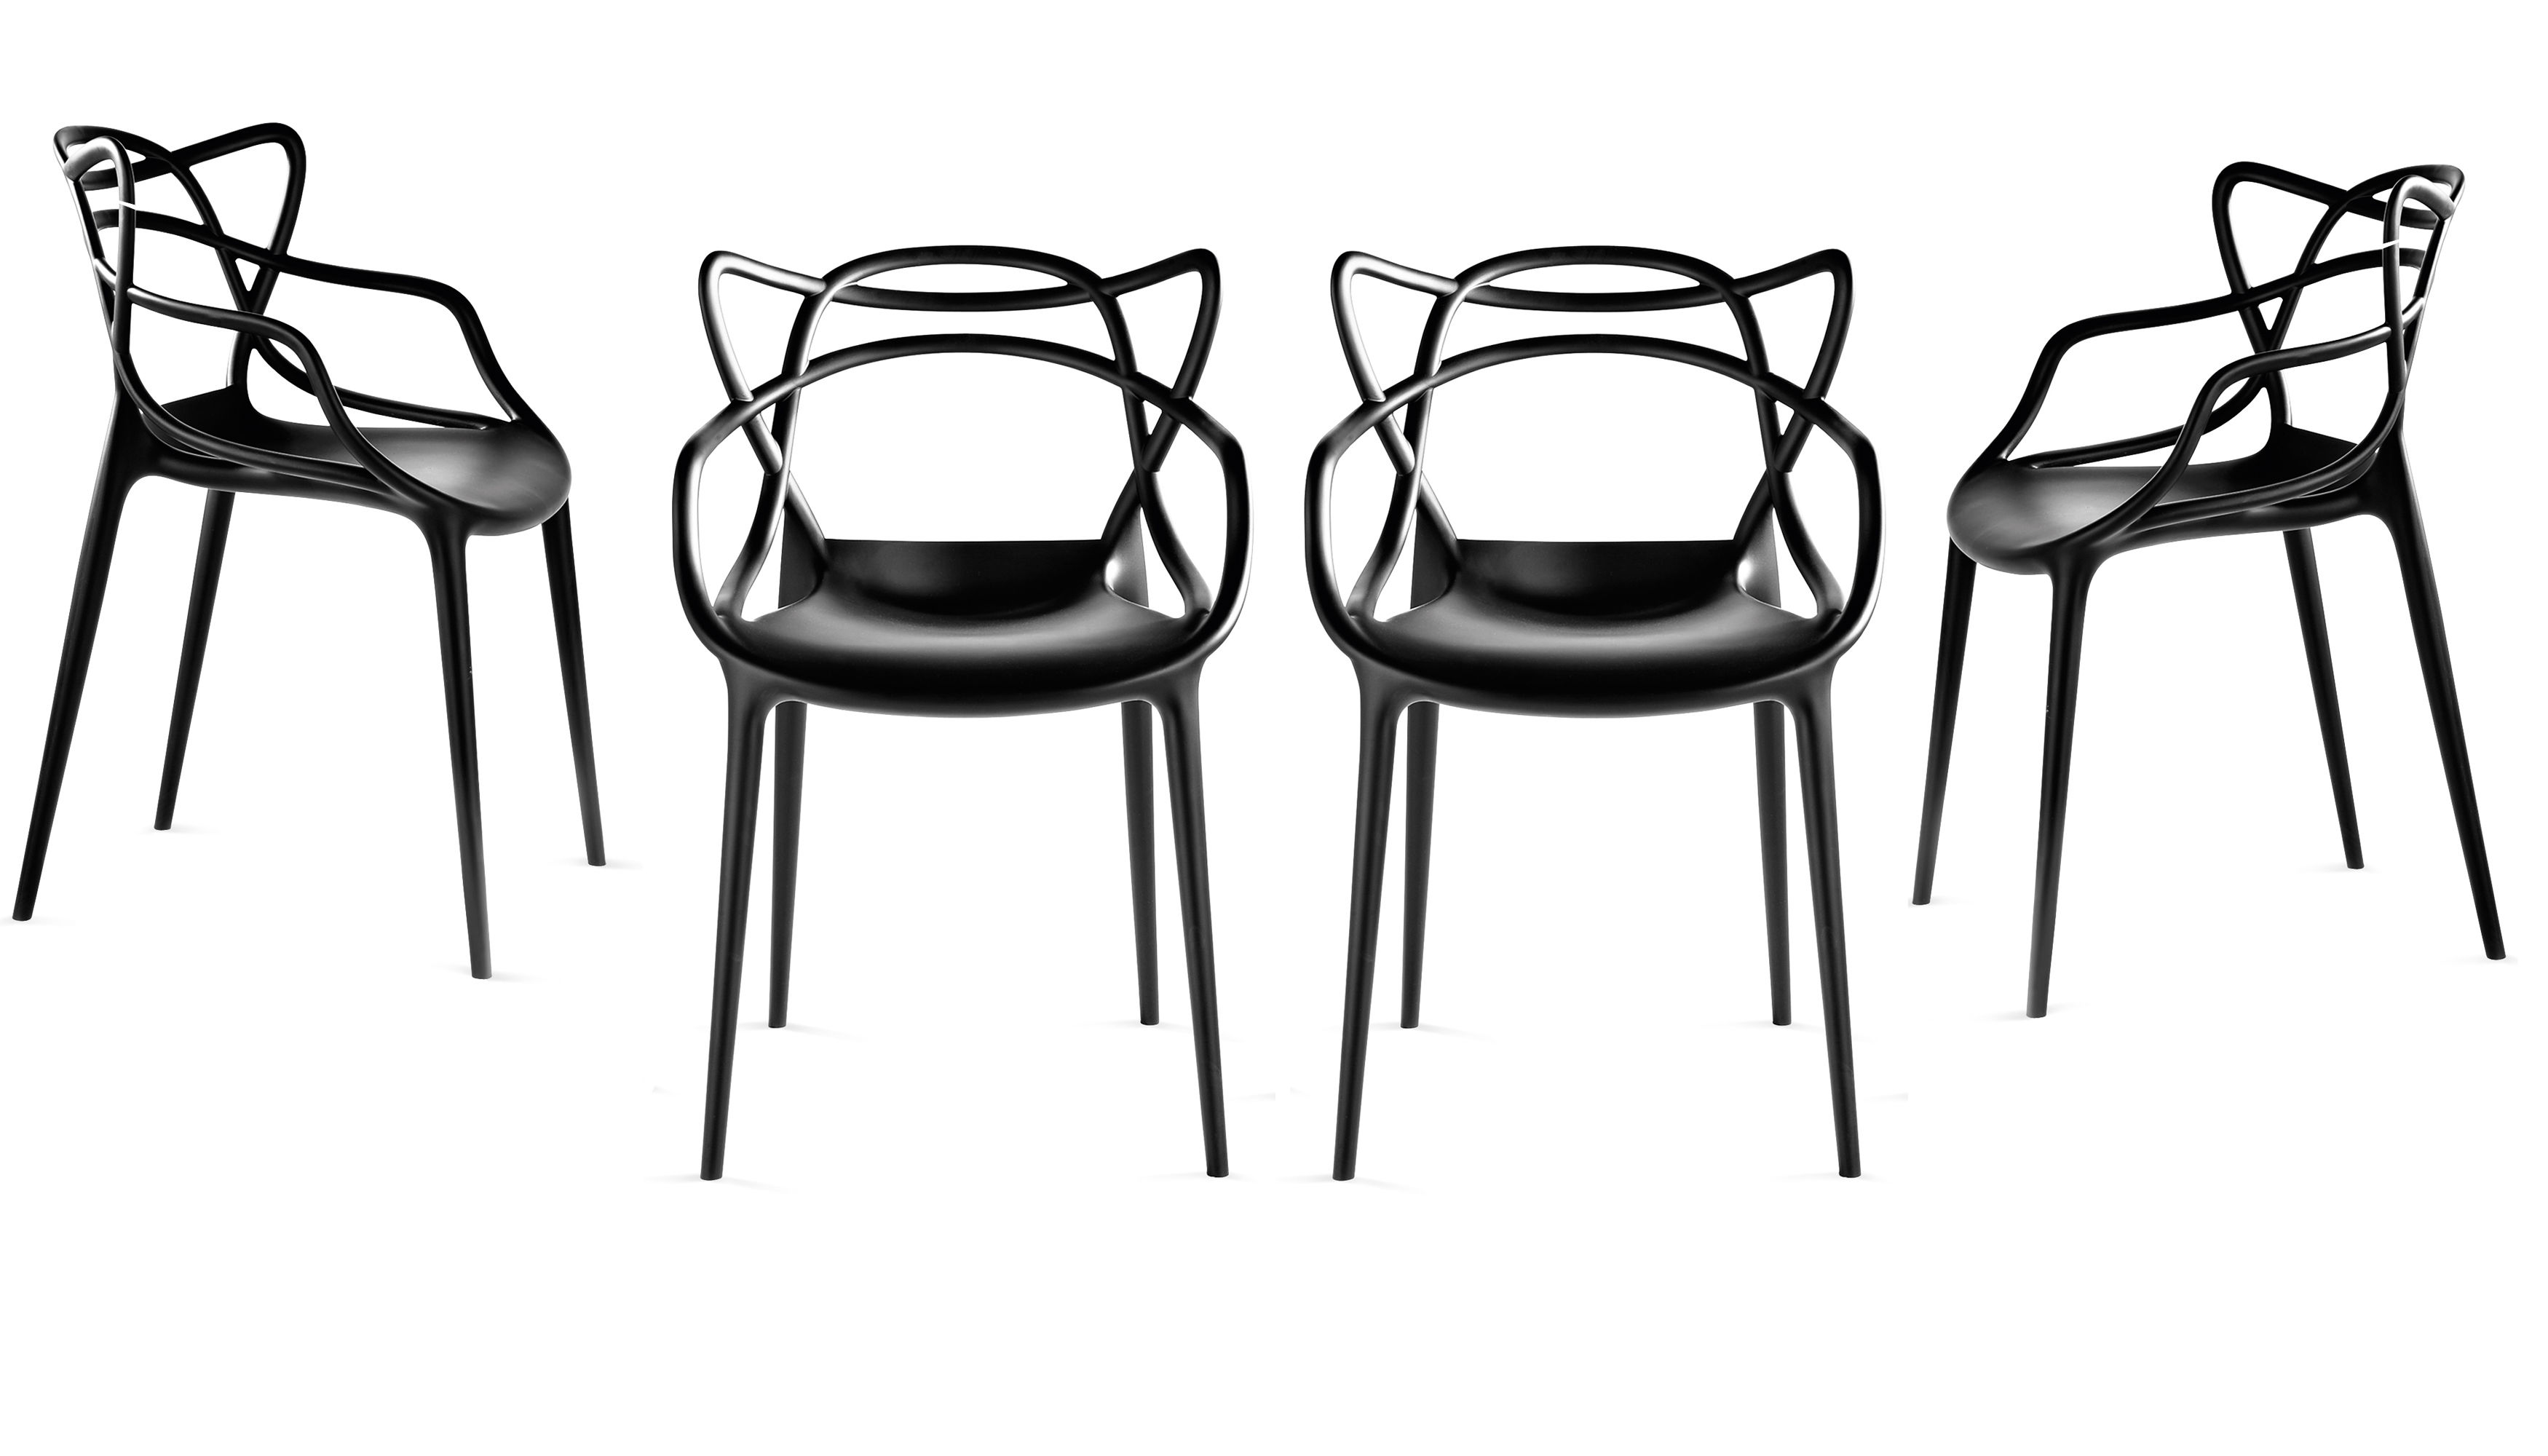 Masters Stackable armchair Plastic Set of 4 Black by Kartell